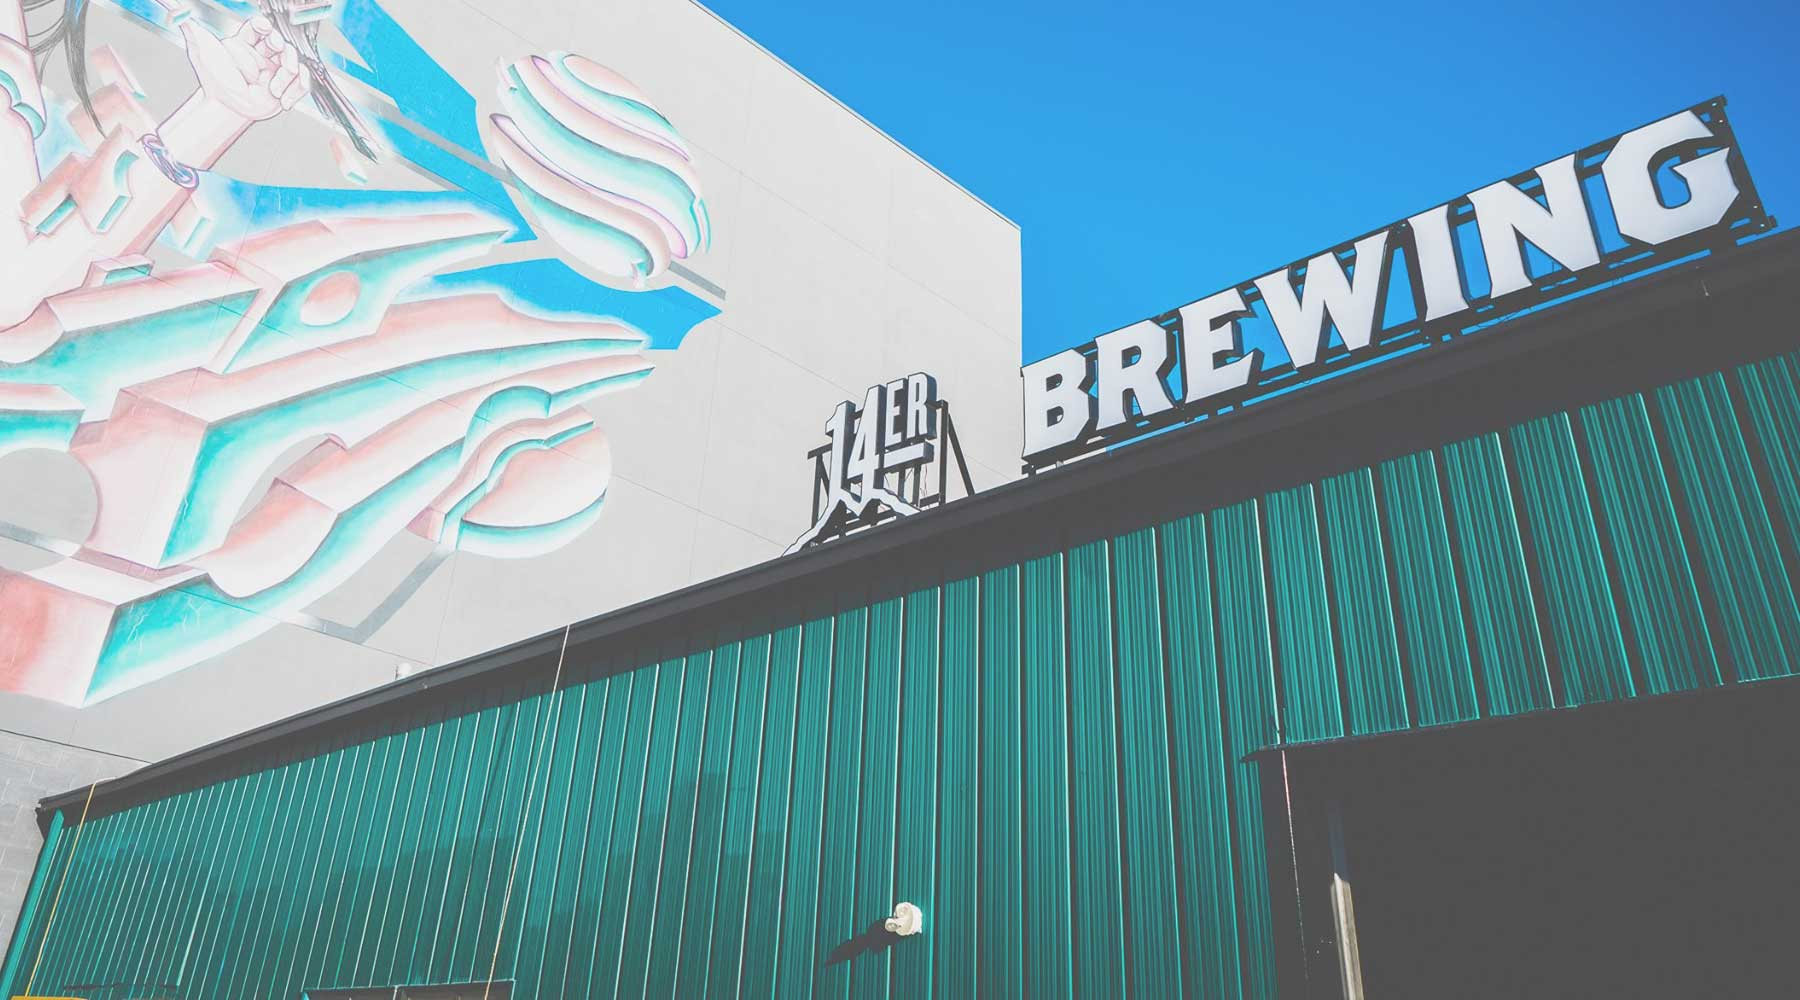 14er Brewing Company | Just Wine